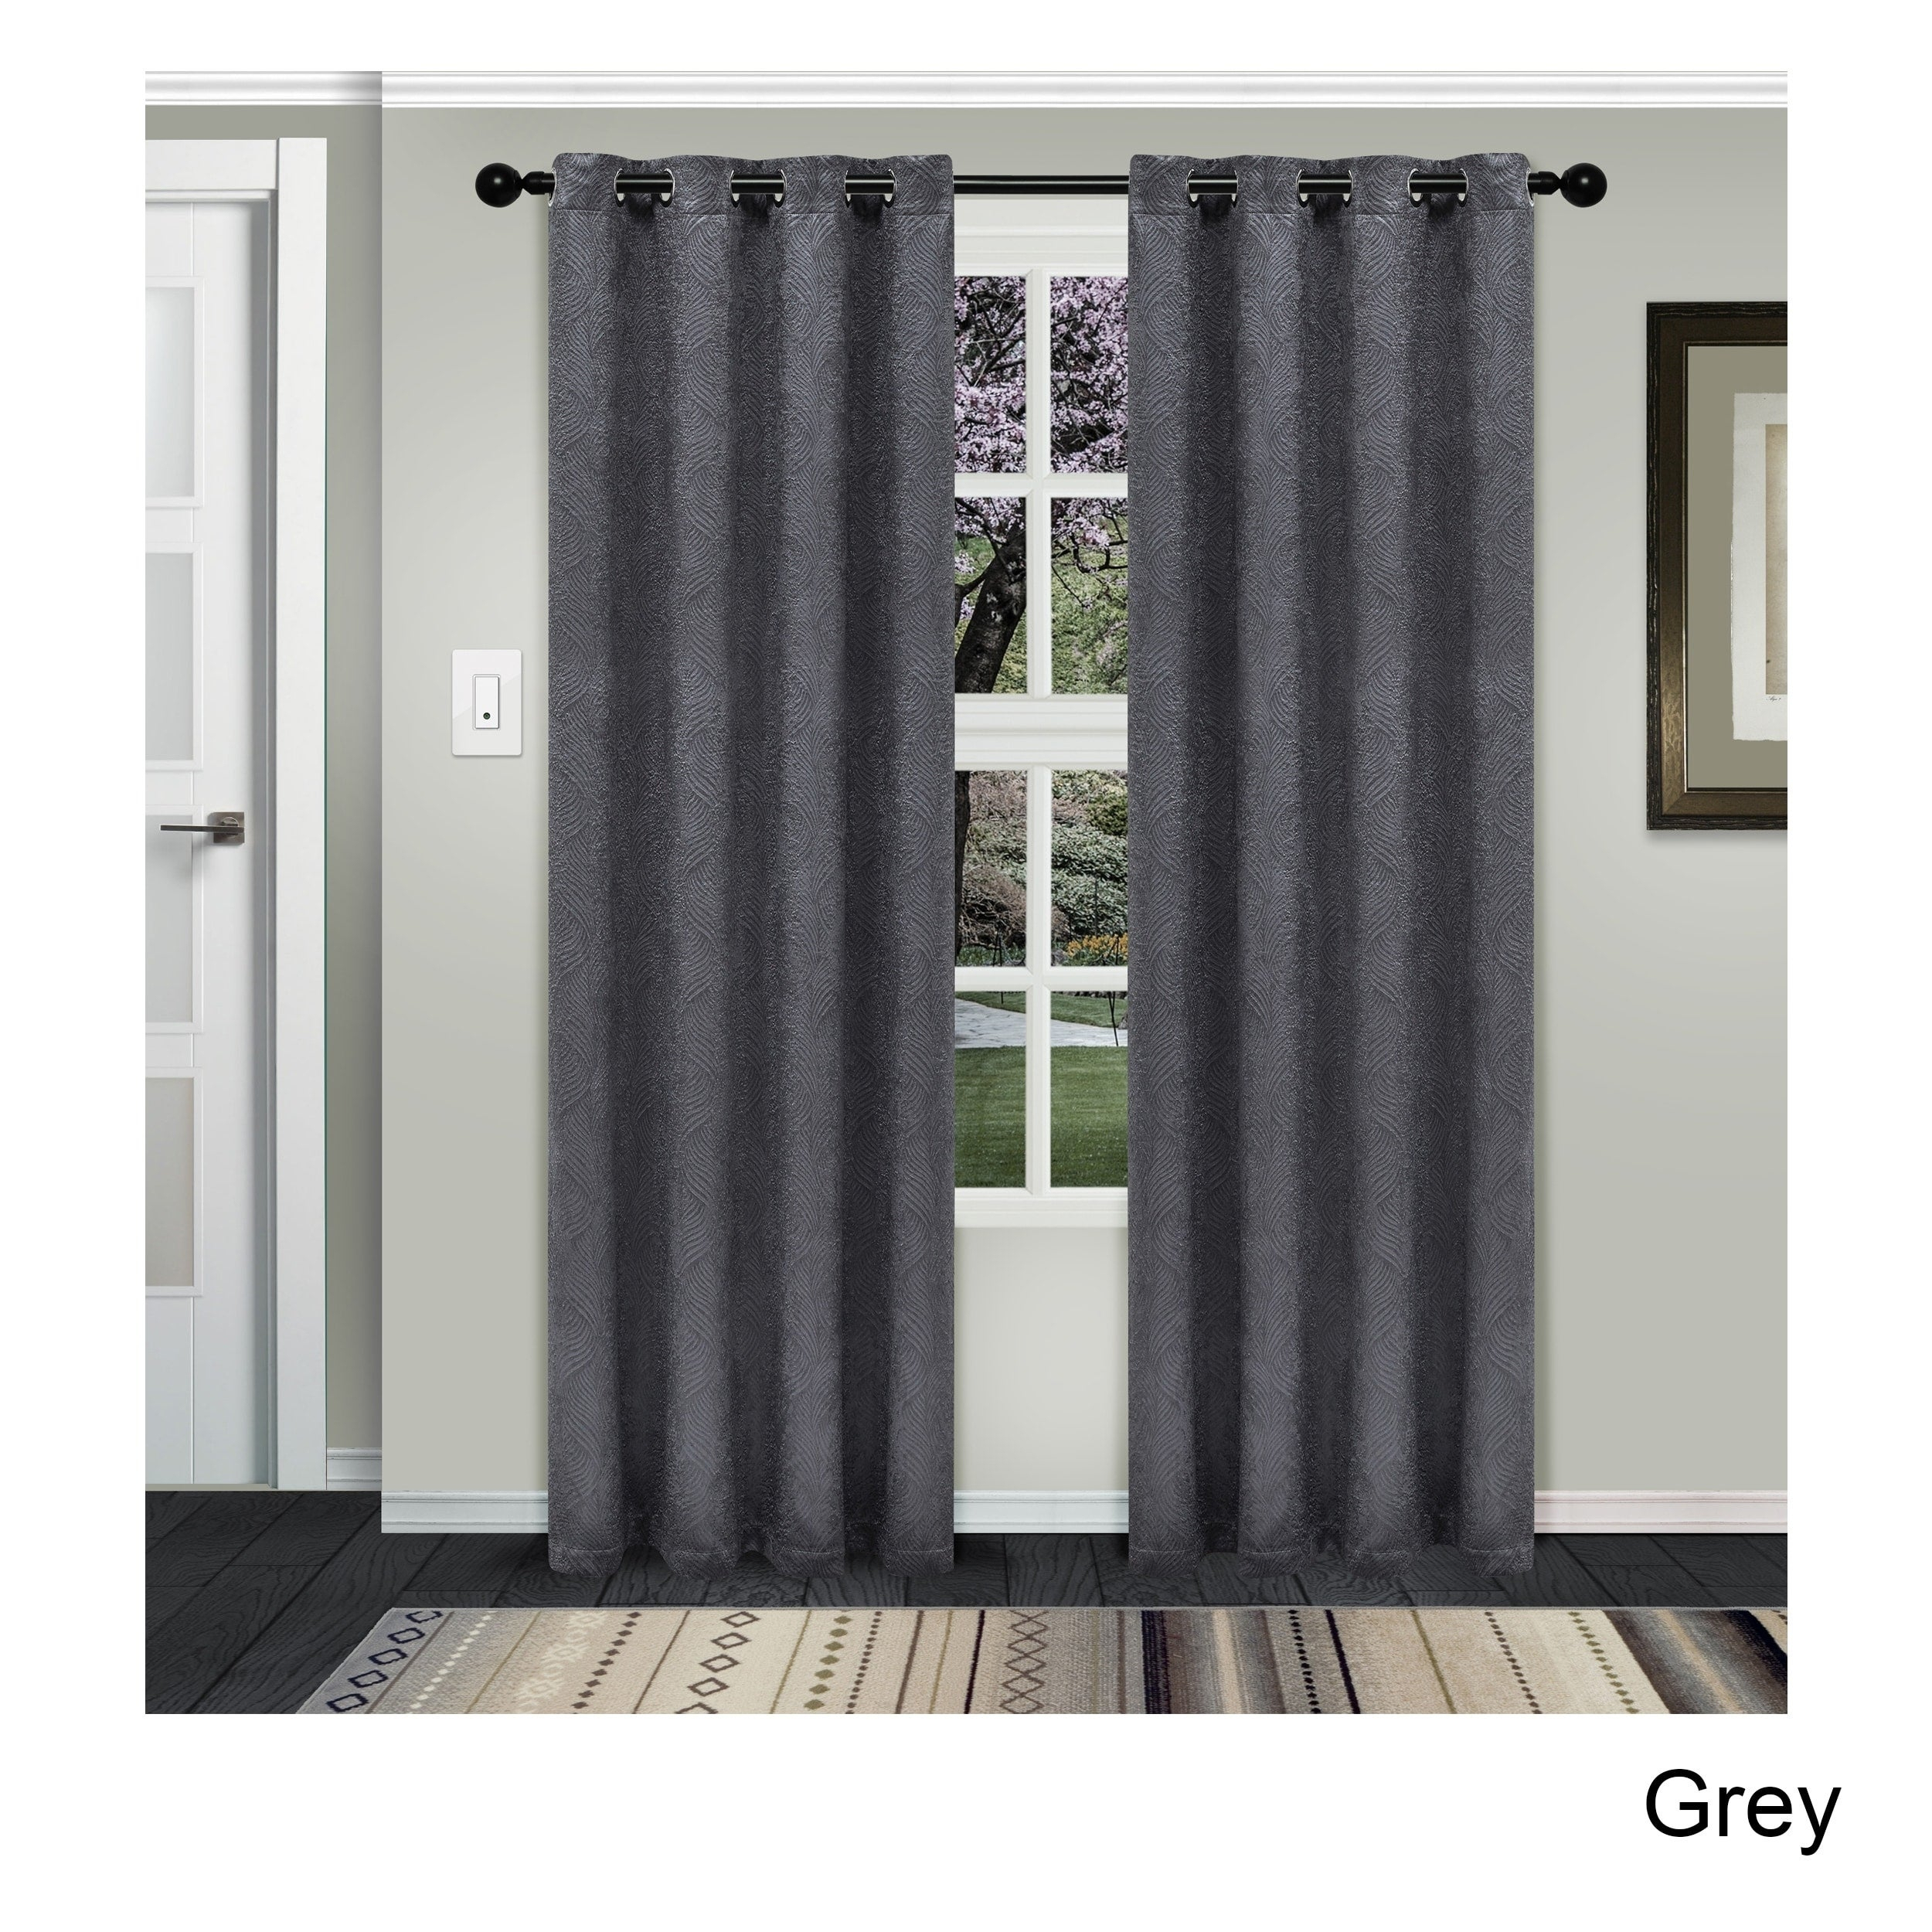 Superior Waverly Insulated Thermal Blackout Grommet Curtain Panel Pair With Regard To Embossed Thermal Weaved Blackout Grommet Drapery Curtains (View 5 of 20)